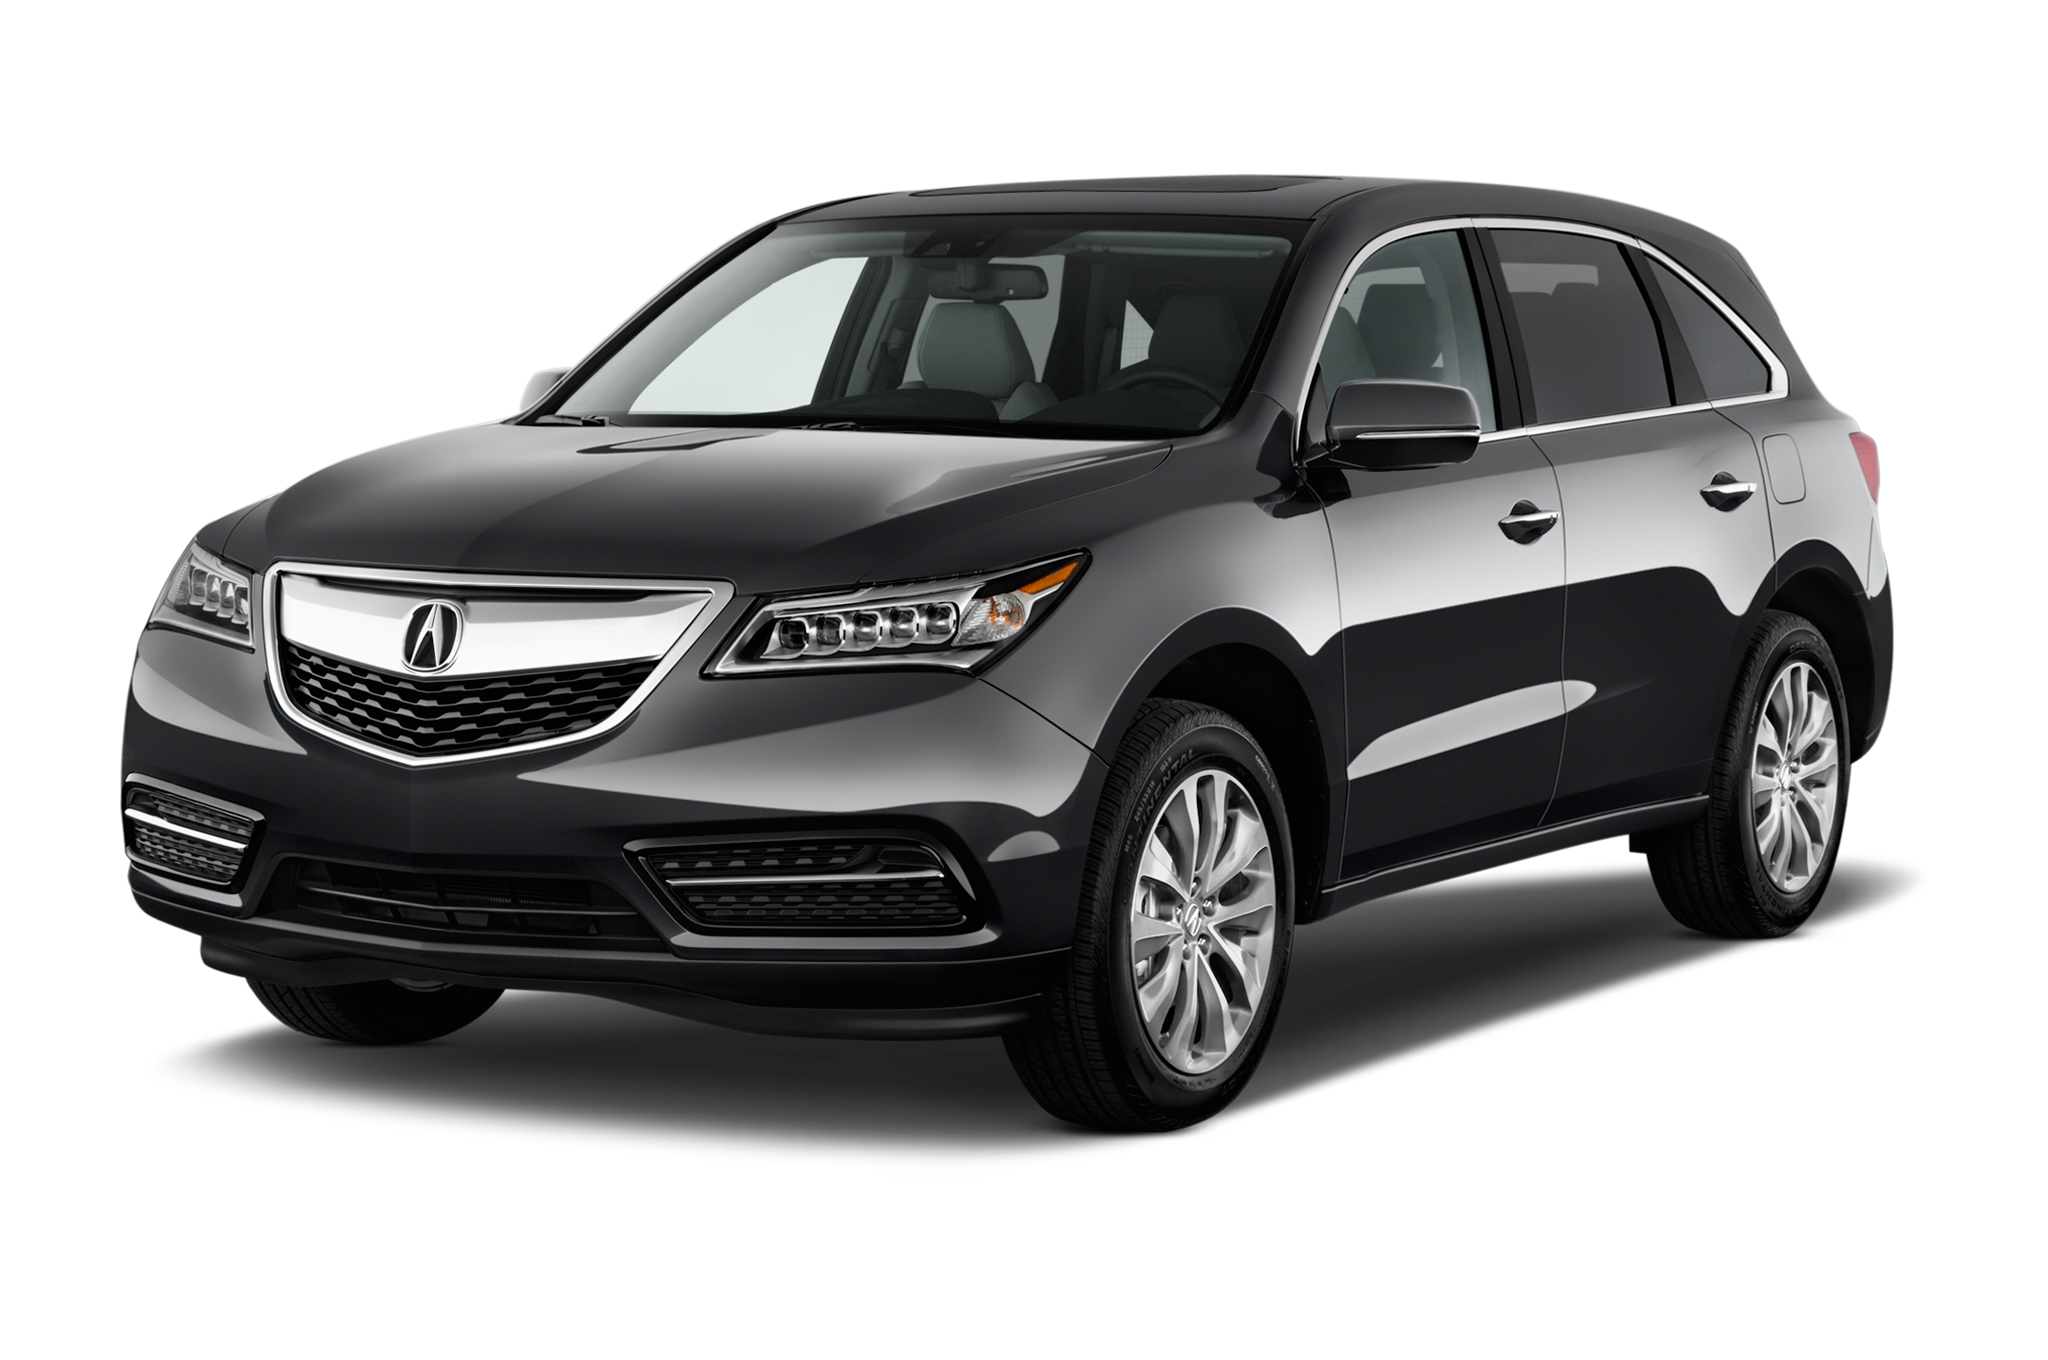 2015 acura mdx reviews and rating motor trend rh motortrend com 2004 Acura MDX 2007 Acura MDX